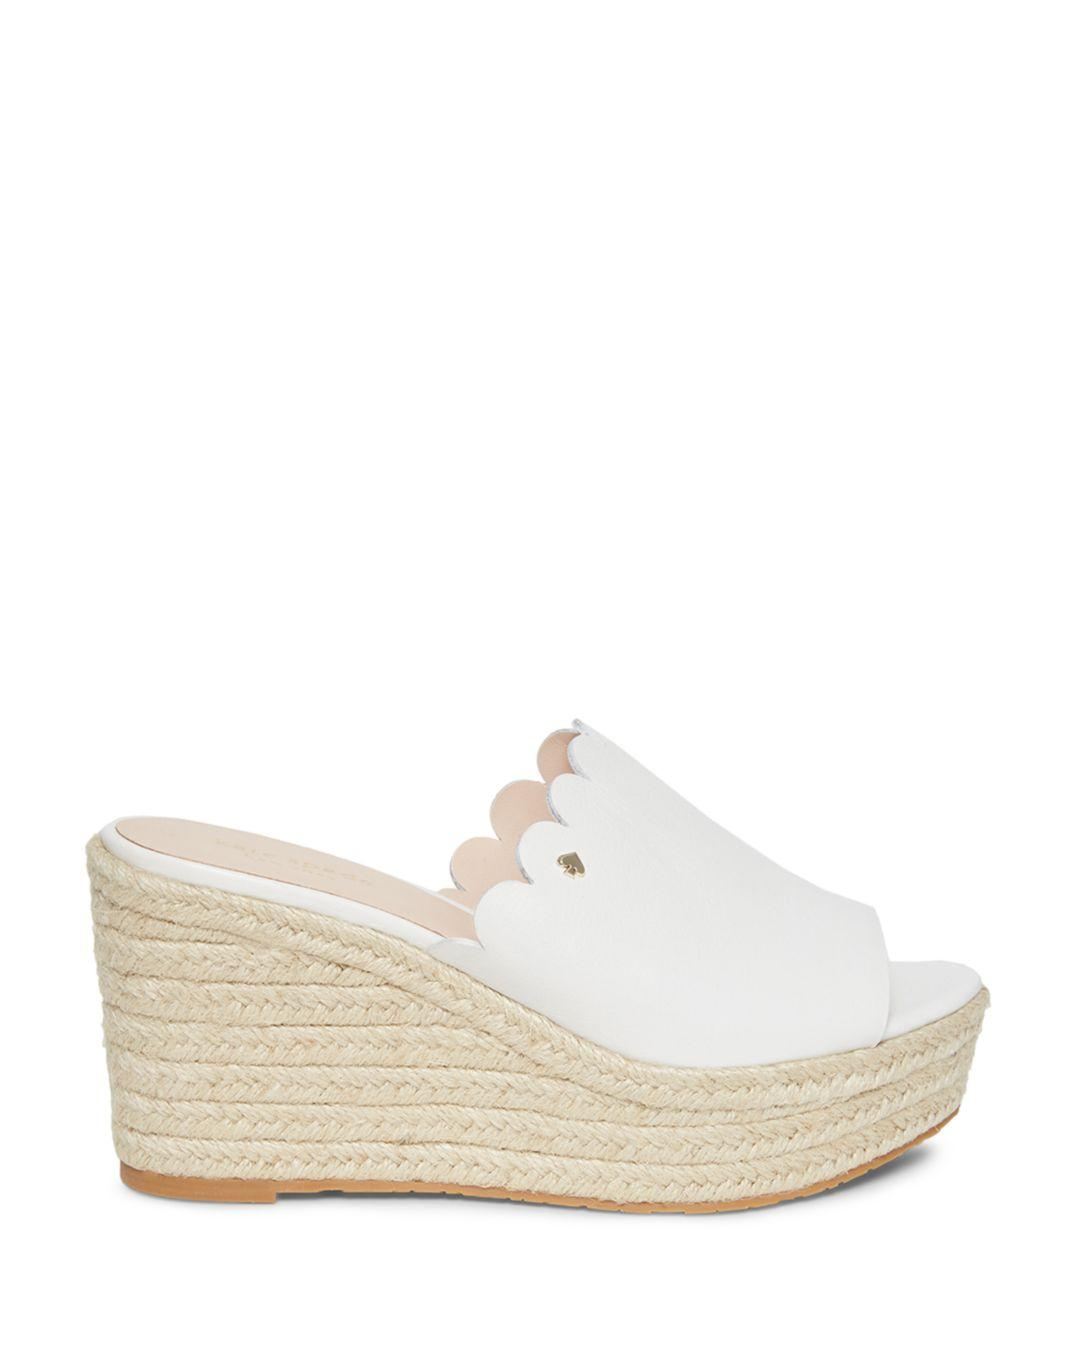 60fa0584ed Lyst - Kate Spade Tabby Leather Platform Espadrilles in White